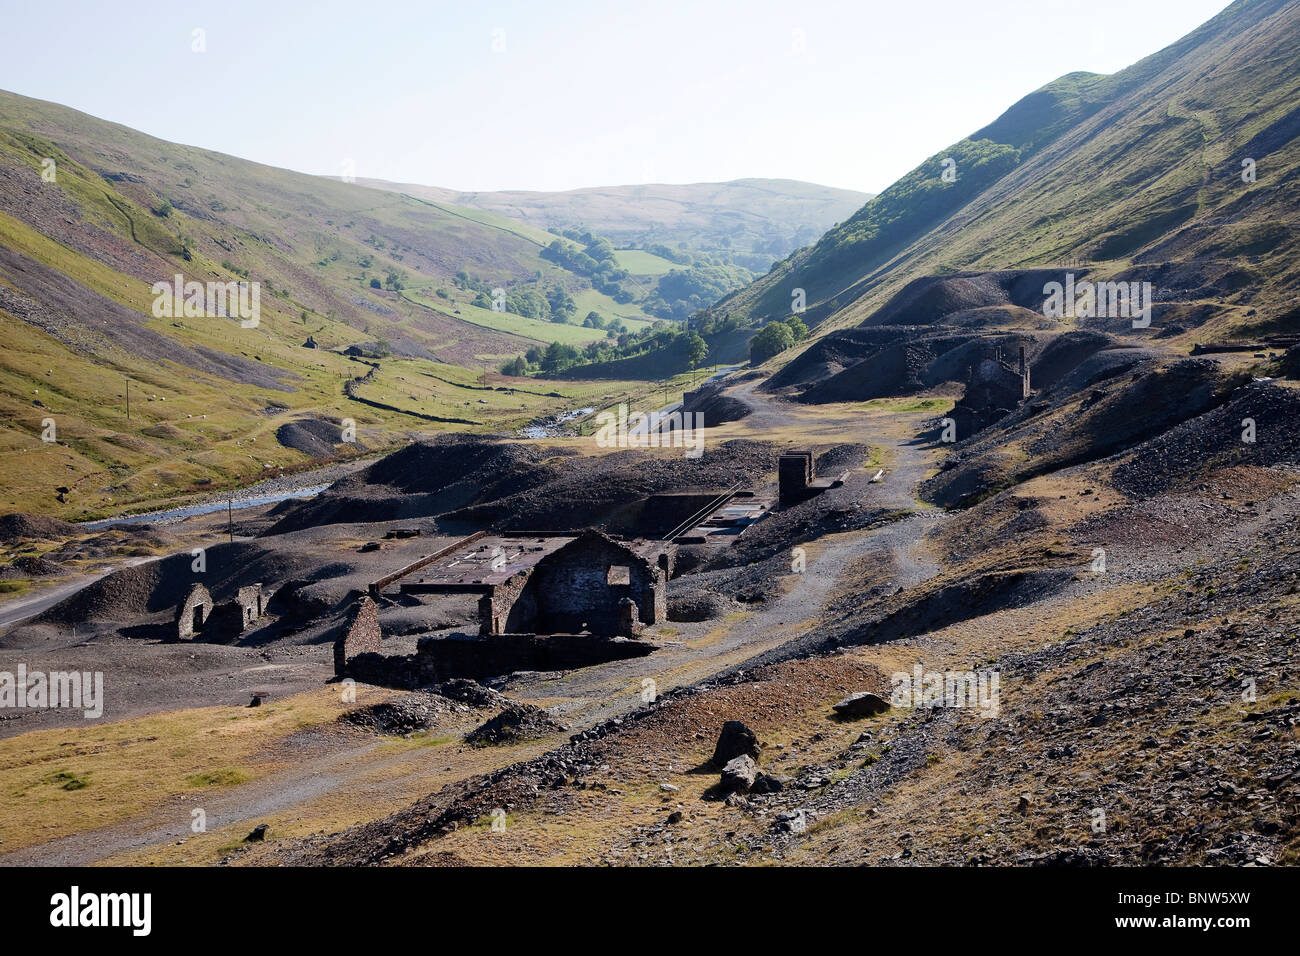 Mining remains at Cwmystwyth lead mines Ystwyth Valley Wales UK - Stock Image